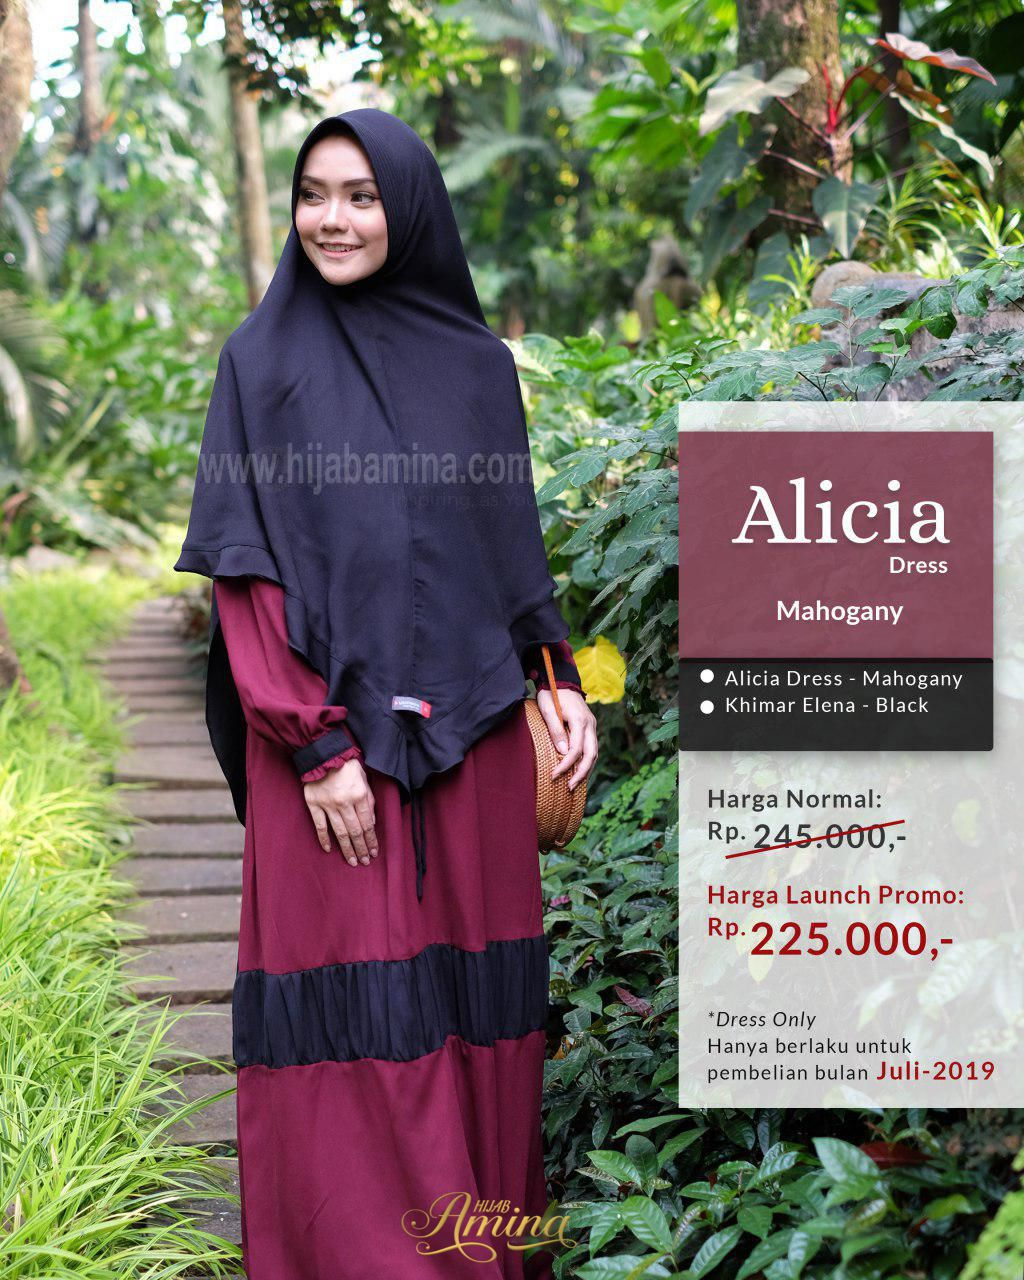 Alicia Dress – Mahogany